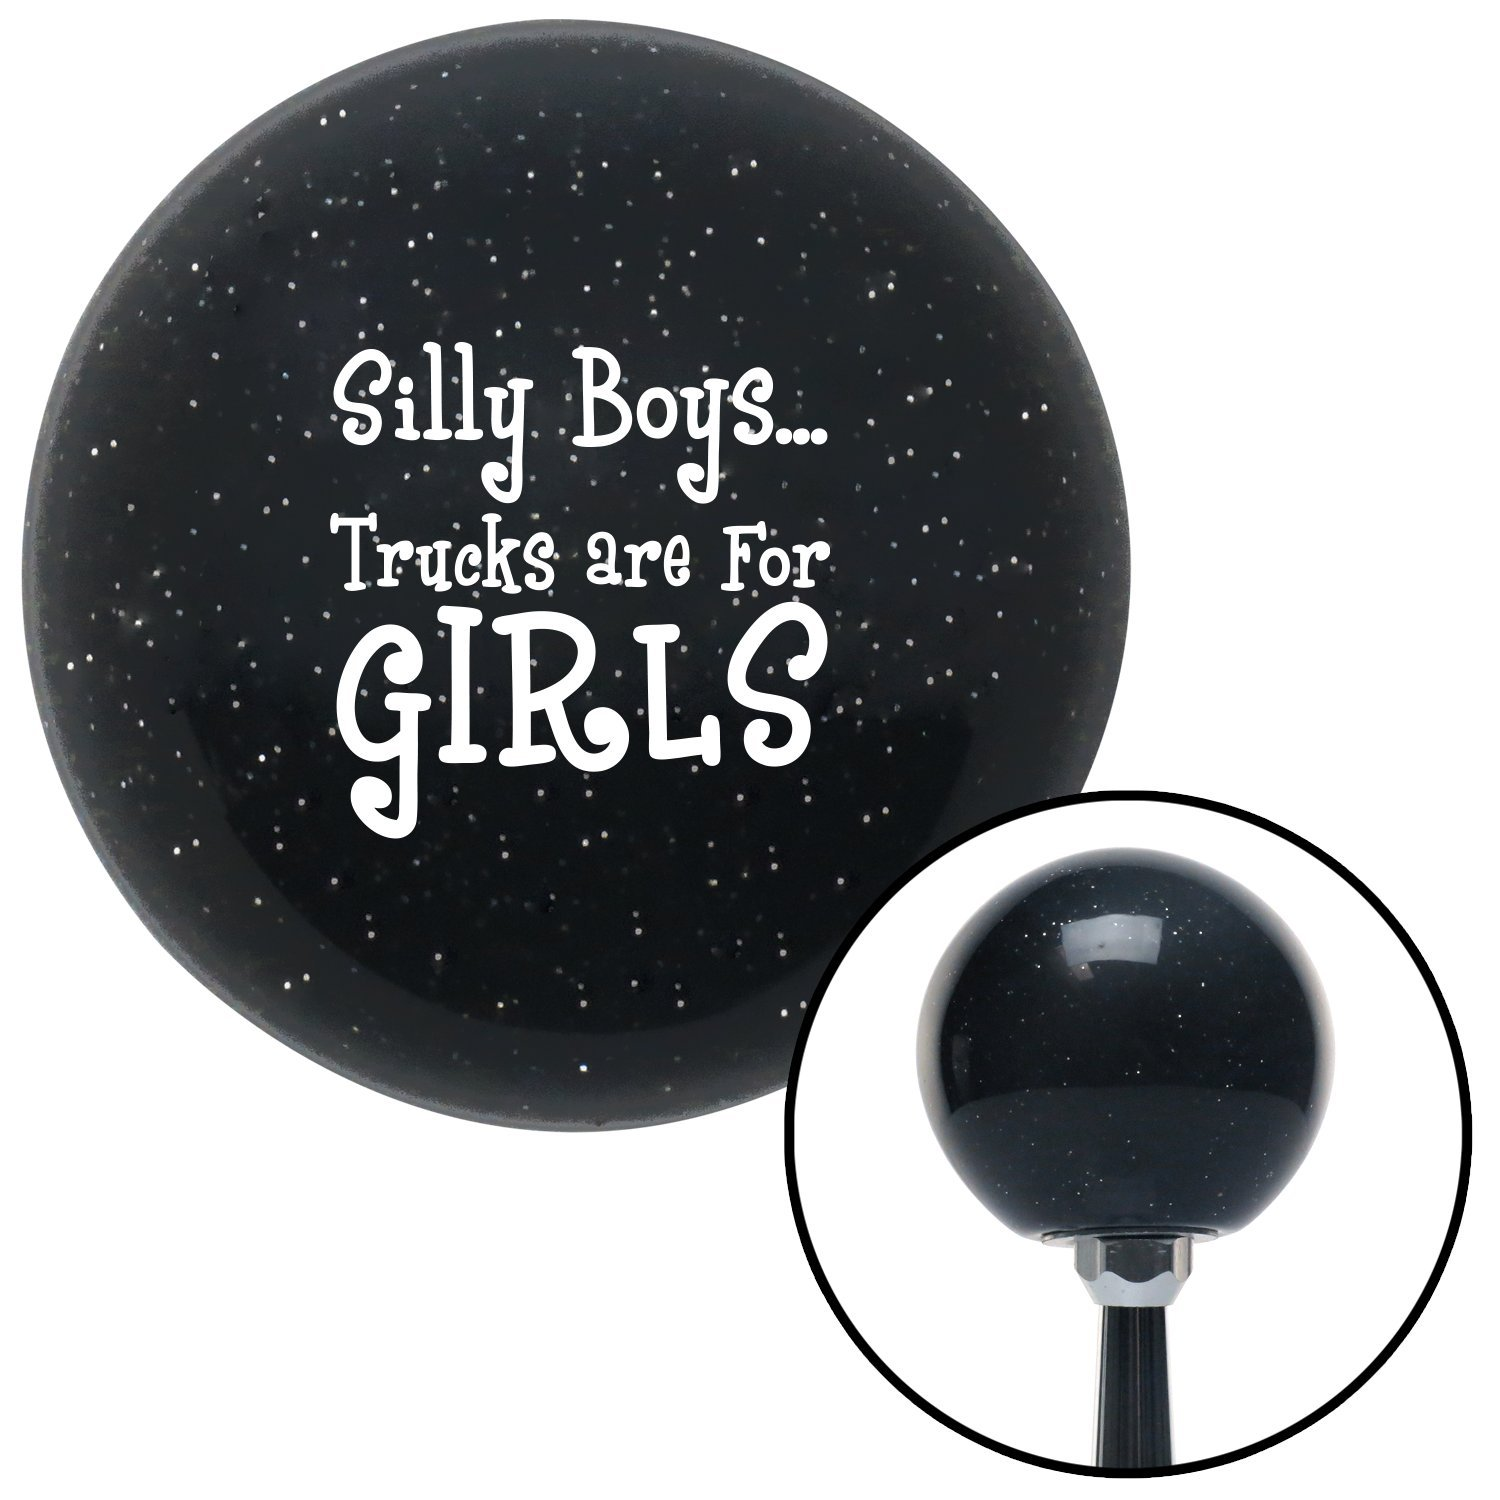 American Shifter 28740 Black Metal Flake Shift Knob White Silly Boys.Trucks are for Girls